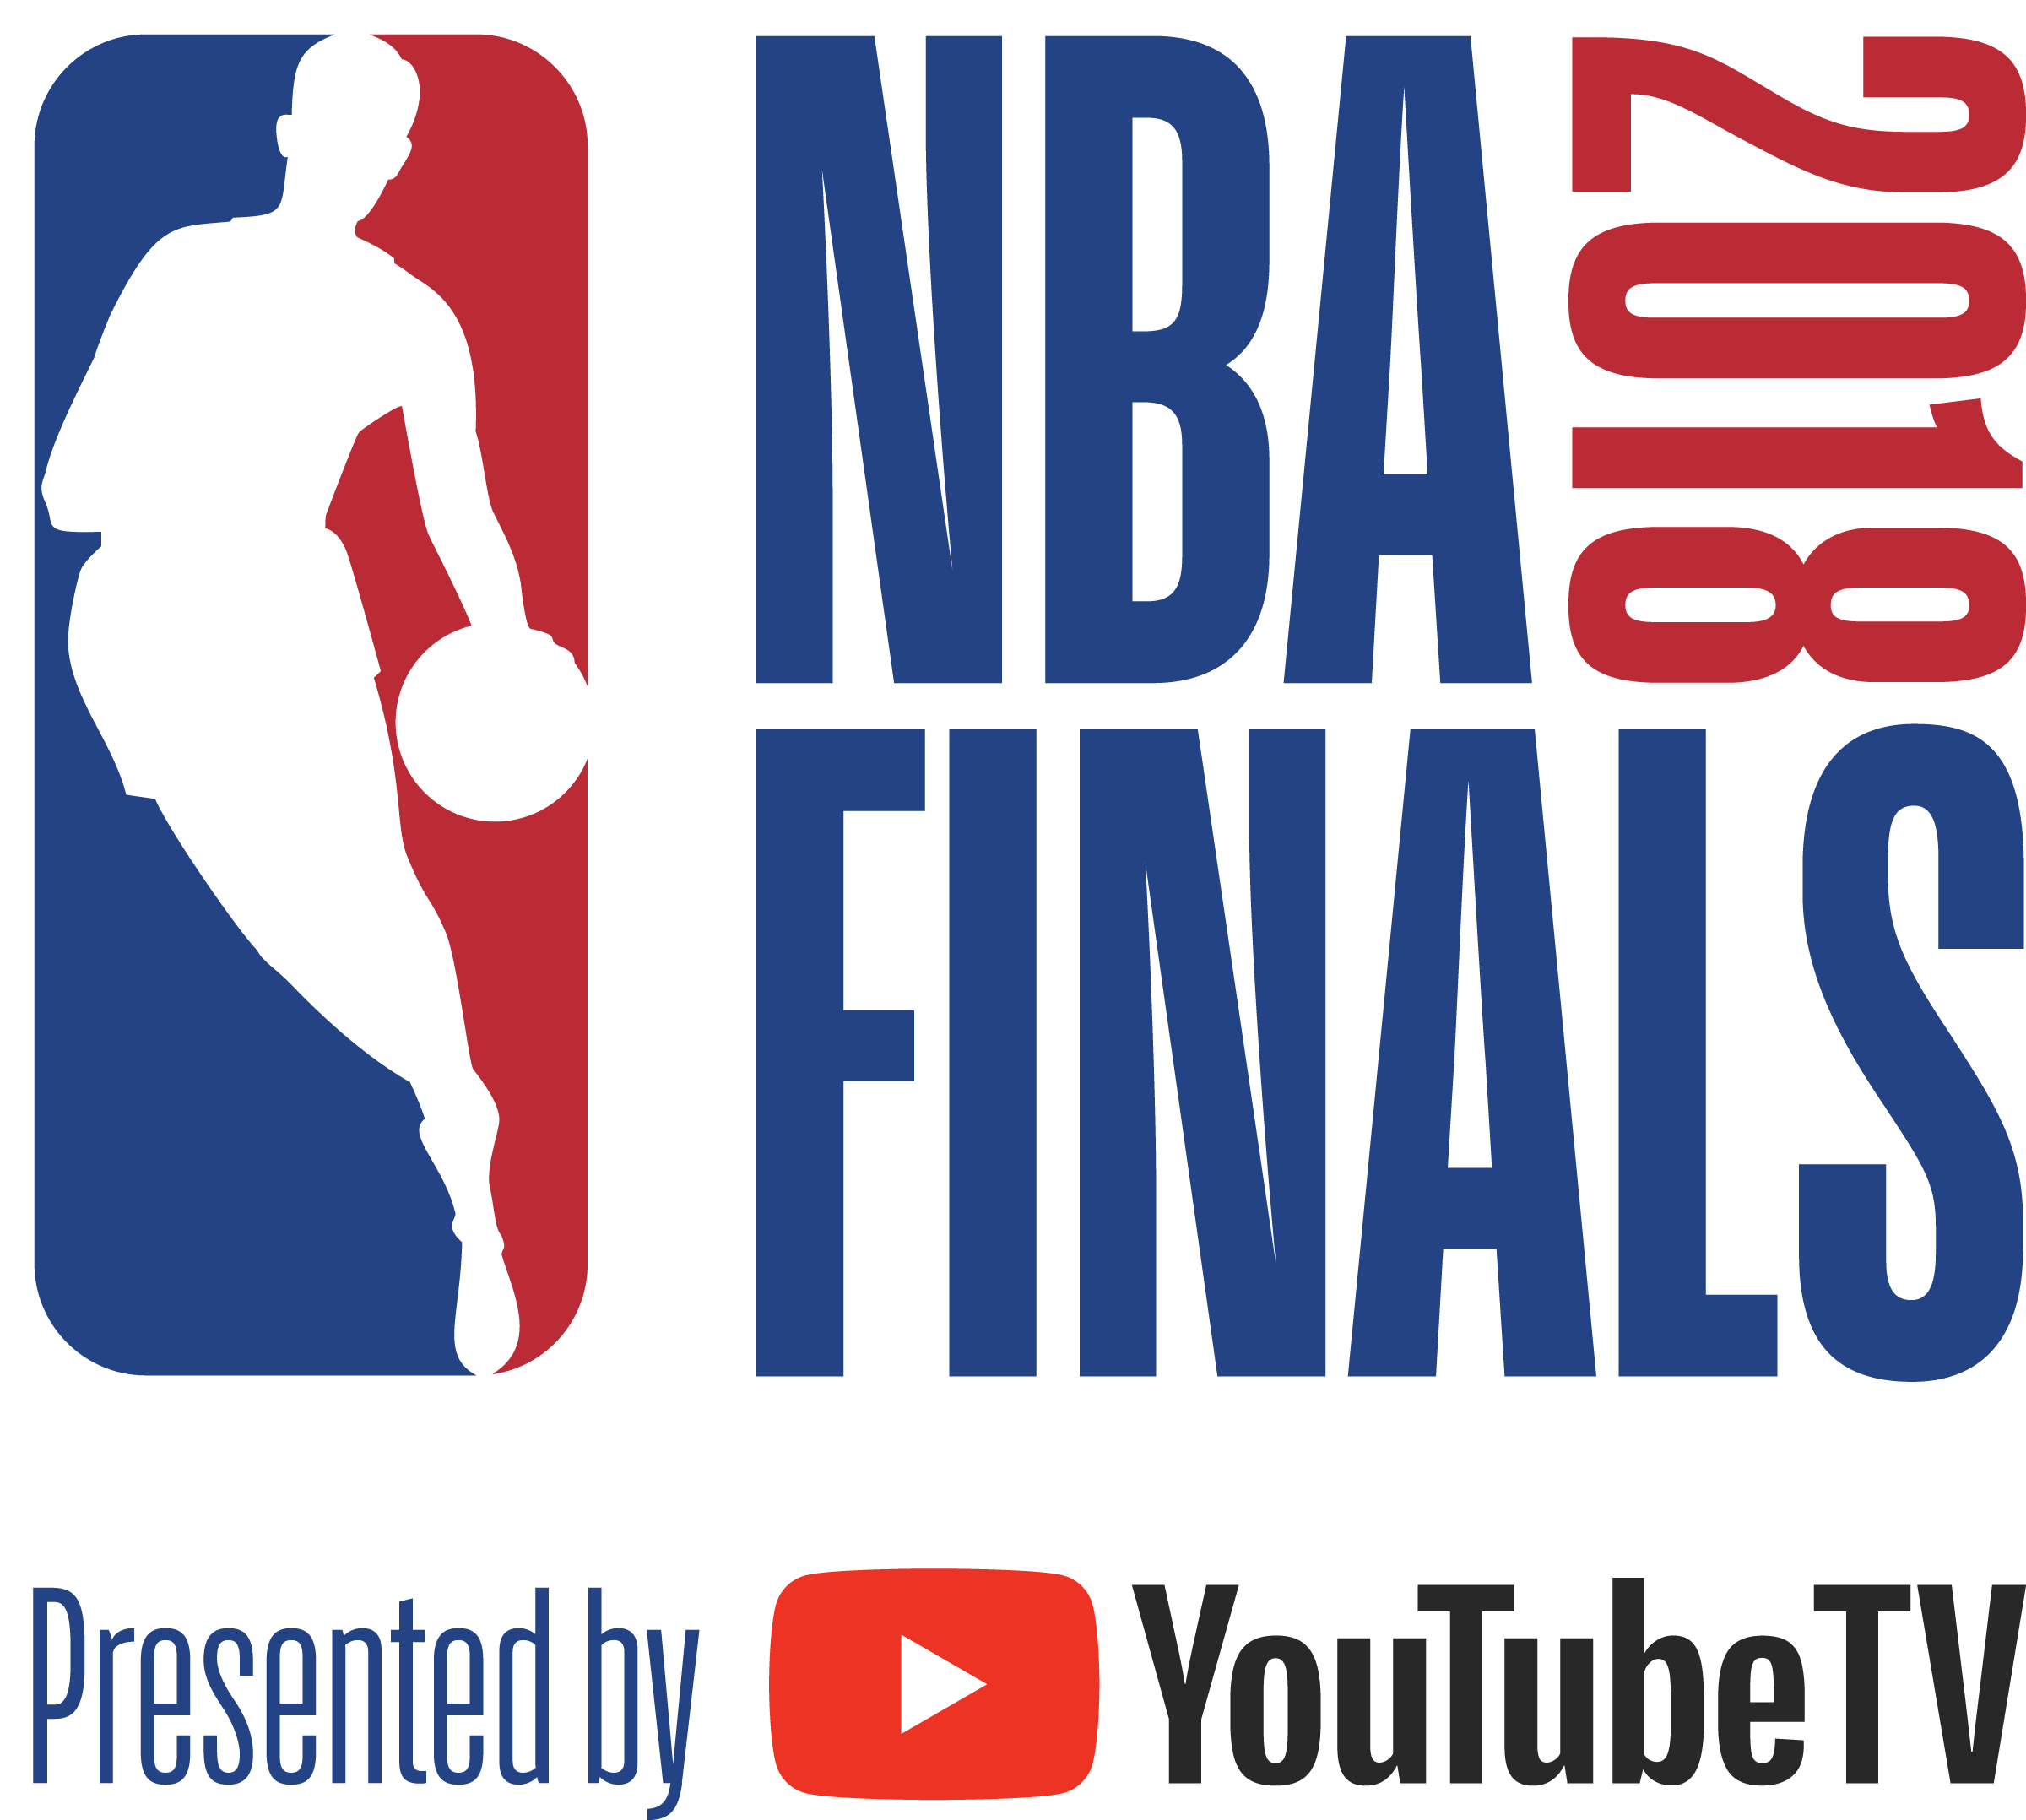 YouTube TV Dunks Presenting Sponsorship of NBA Finals